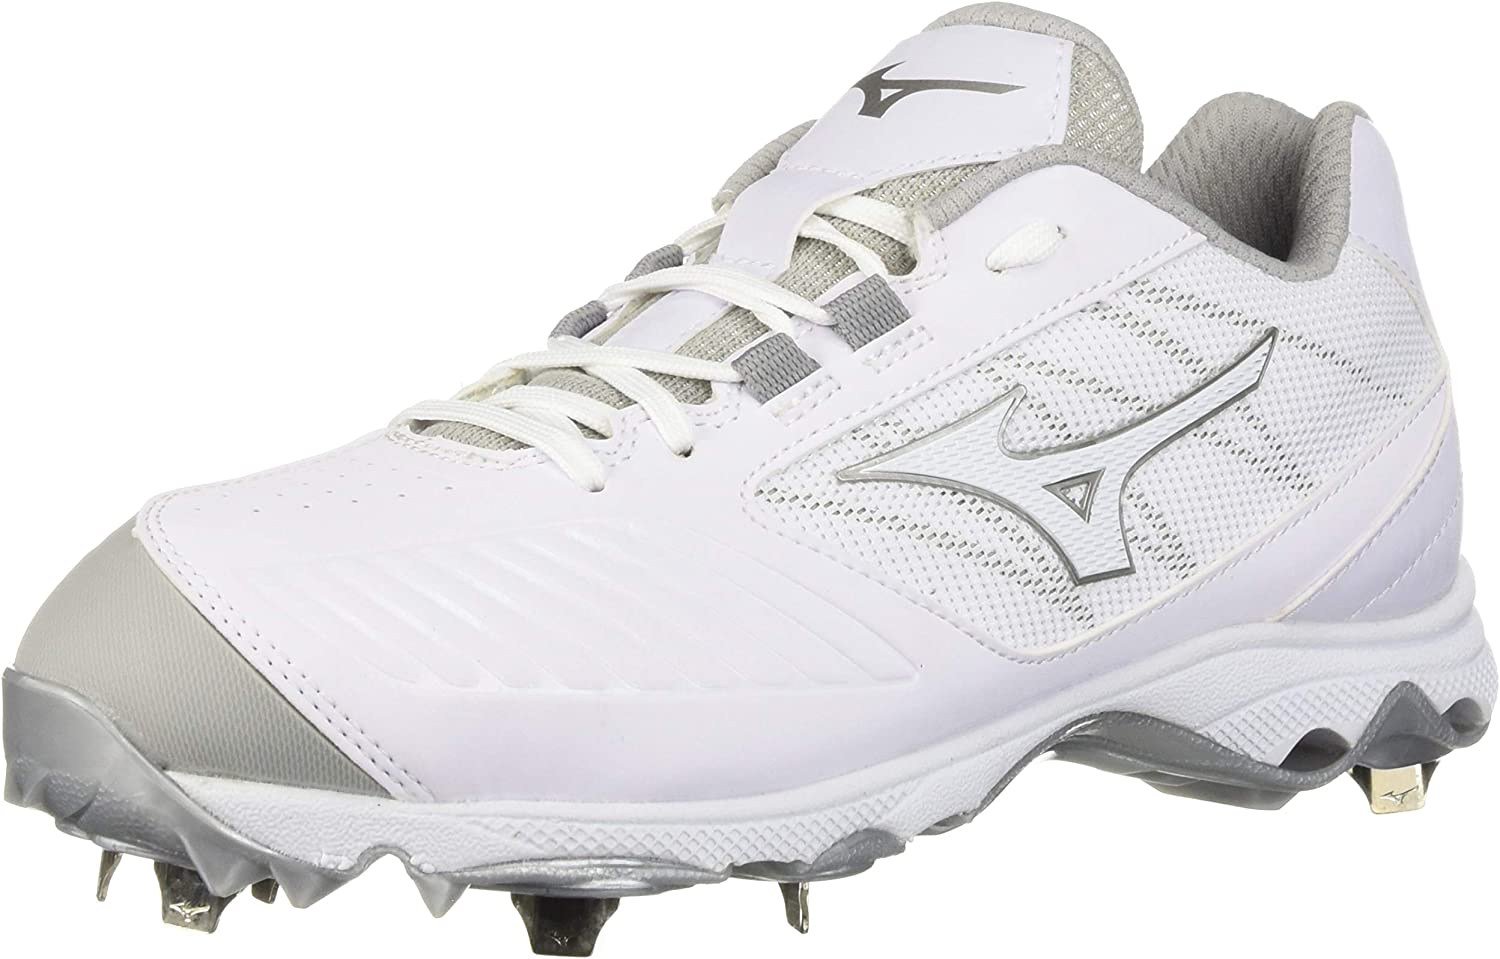 9-SPIKE ADVANCED SWEEP WOMENS 4 10 Black White